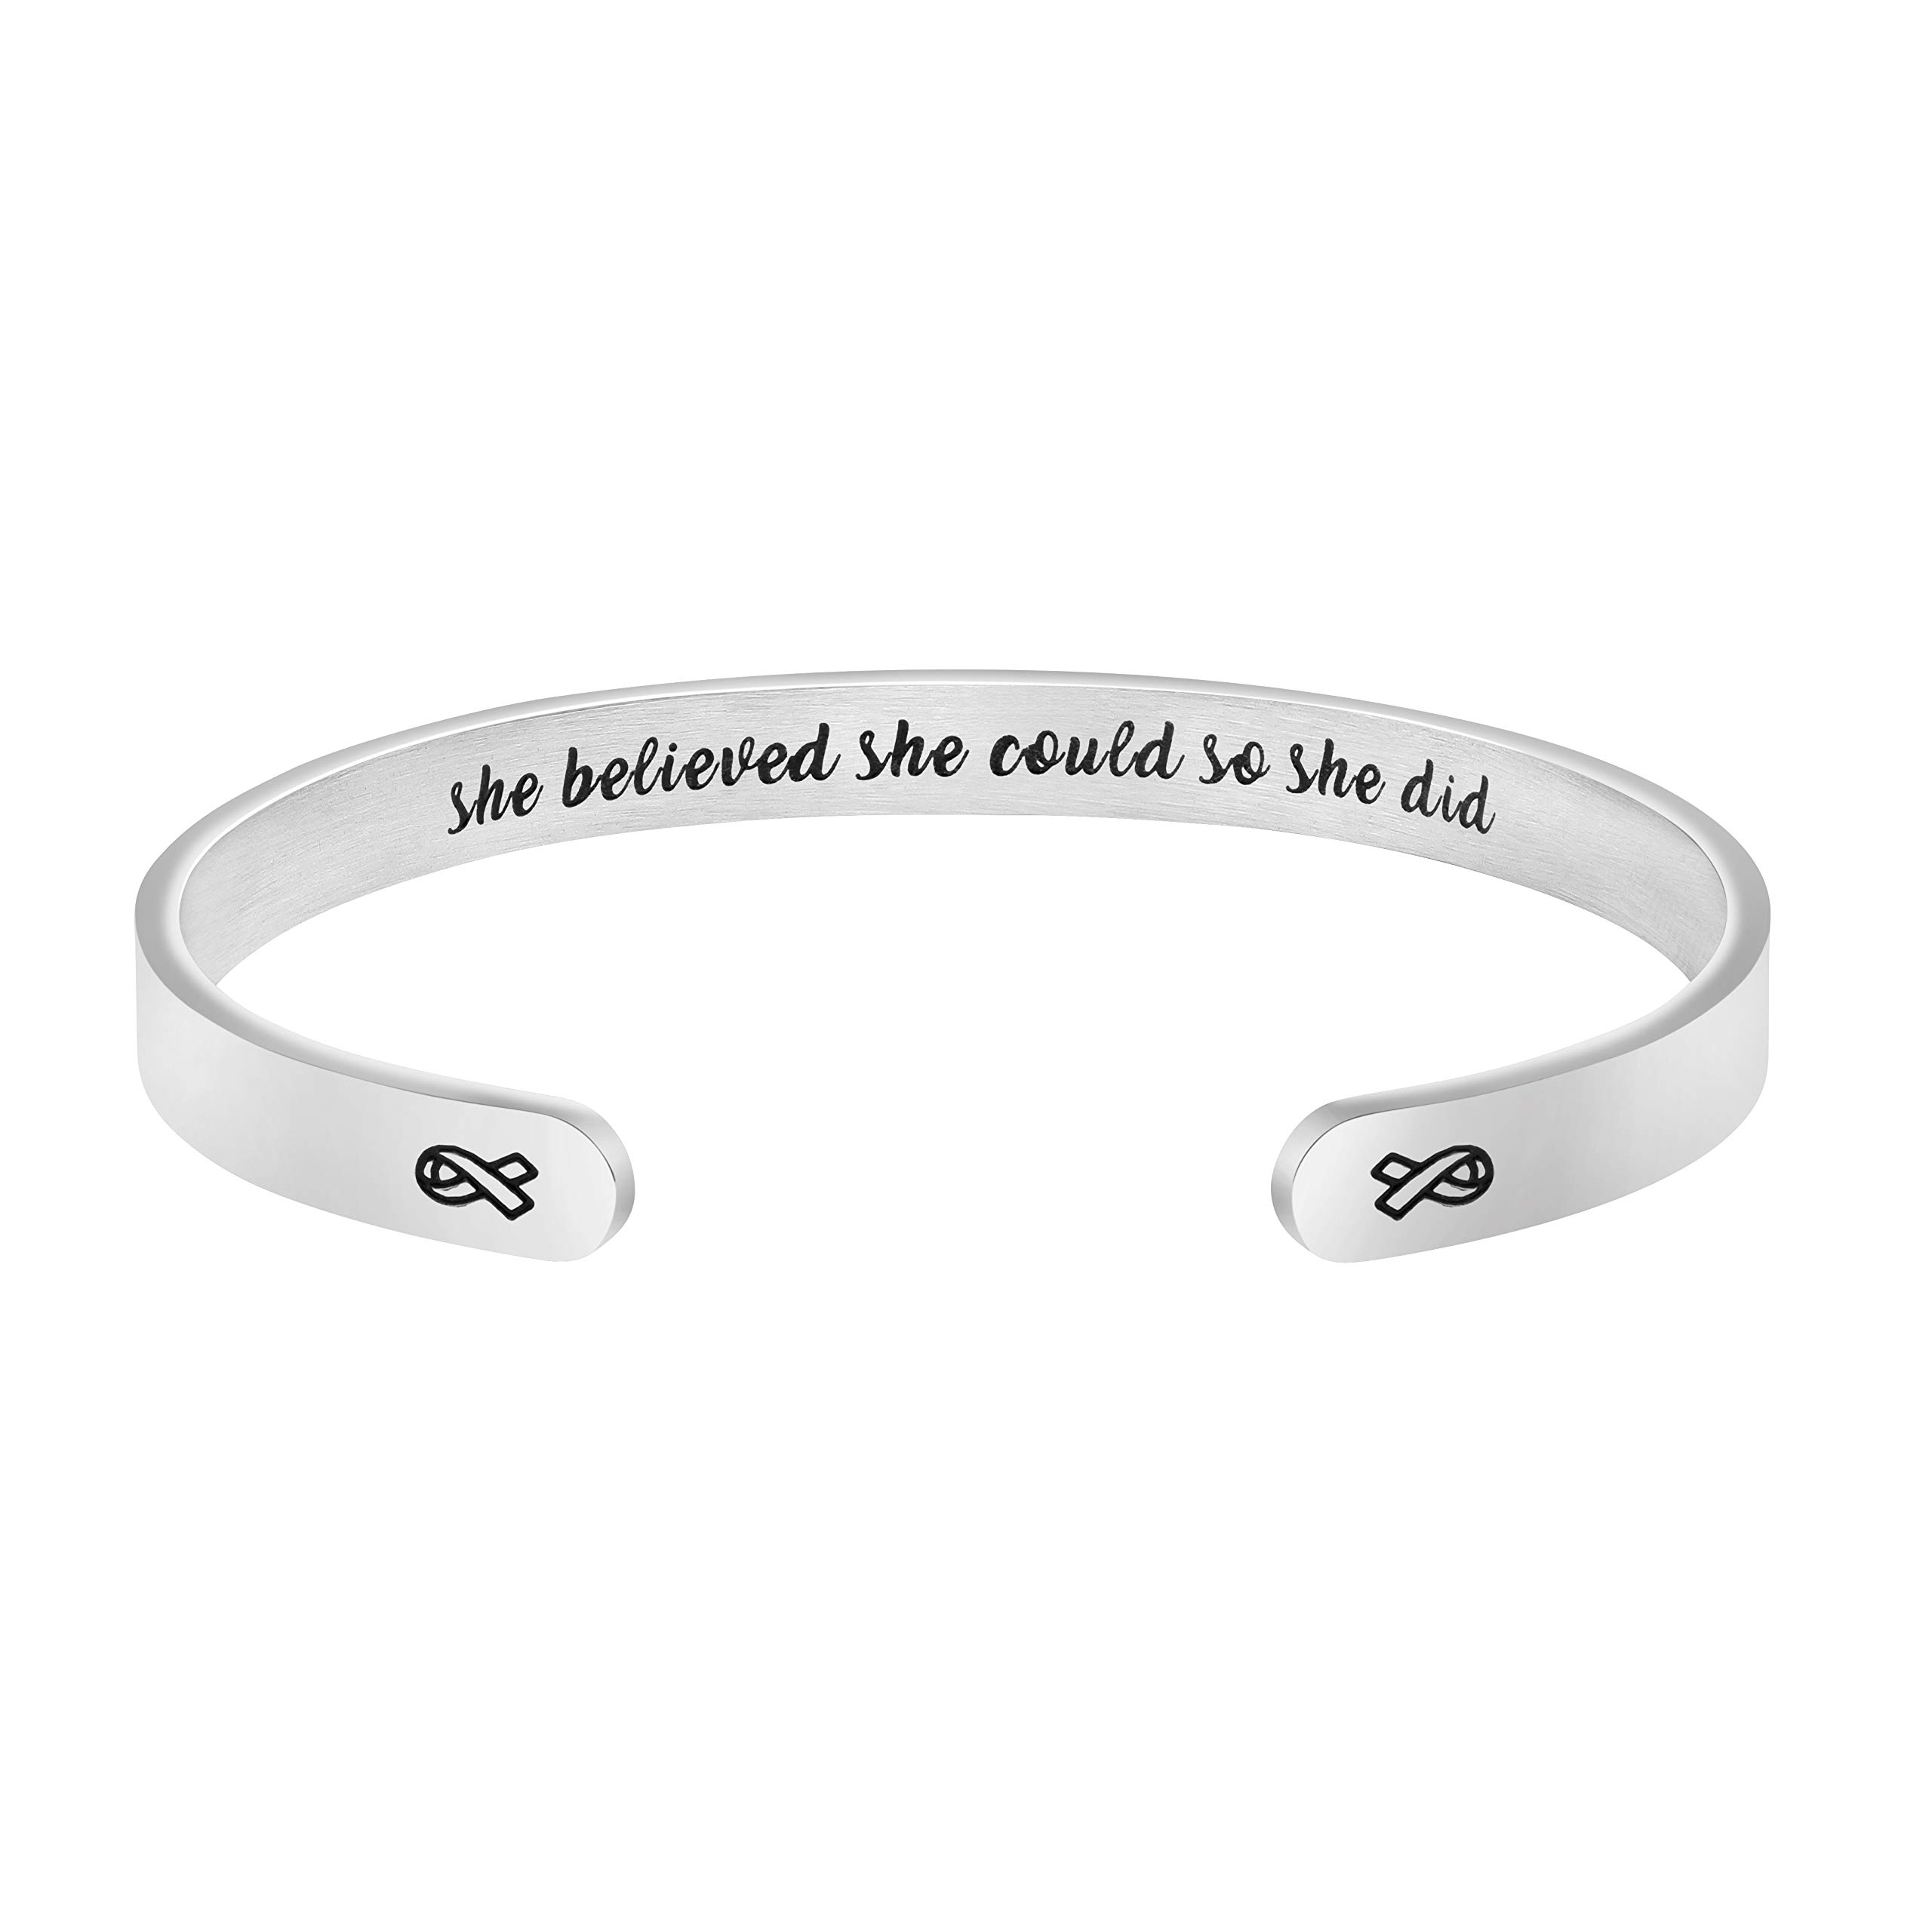 Memgift She Believed She Could So She Did Bracelets Inspirational Cuff Bangle Jewelry for Her